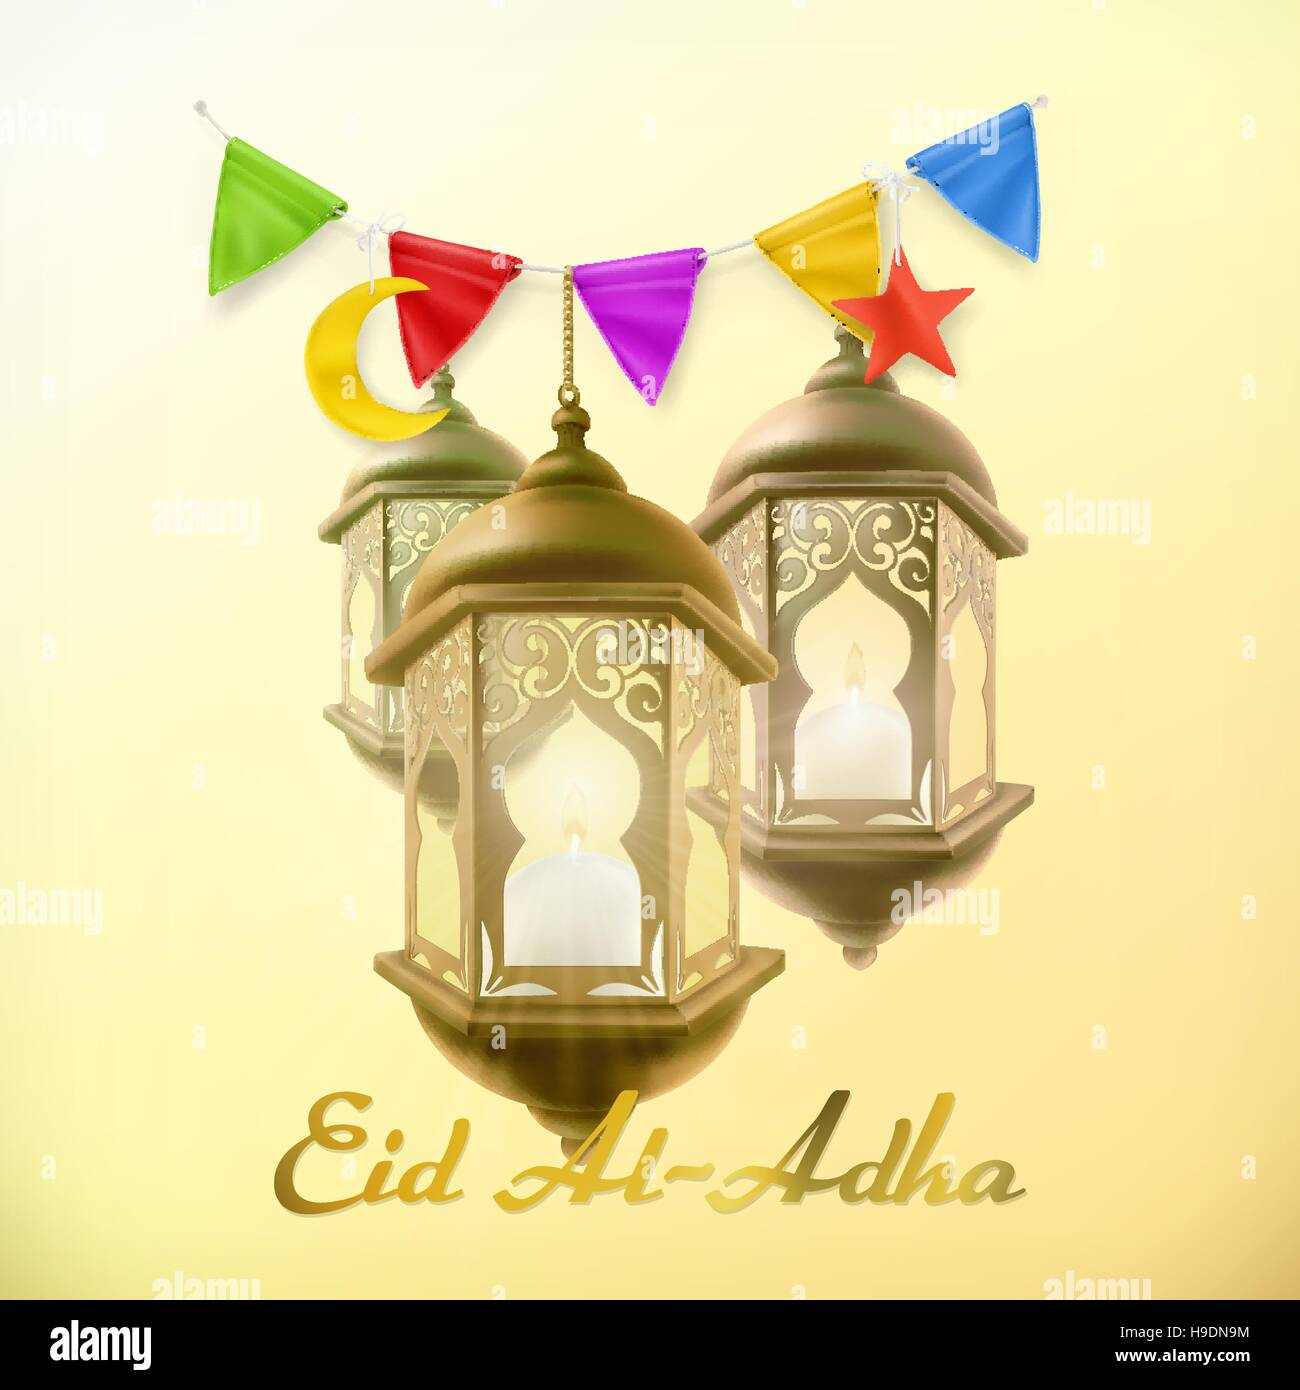 Muslim holiday eid al adha greeting card with lamp islamic culture muslim holiday eid al adha greeting card with lamp islamic culture vector background m4hsunfo